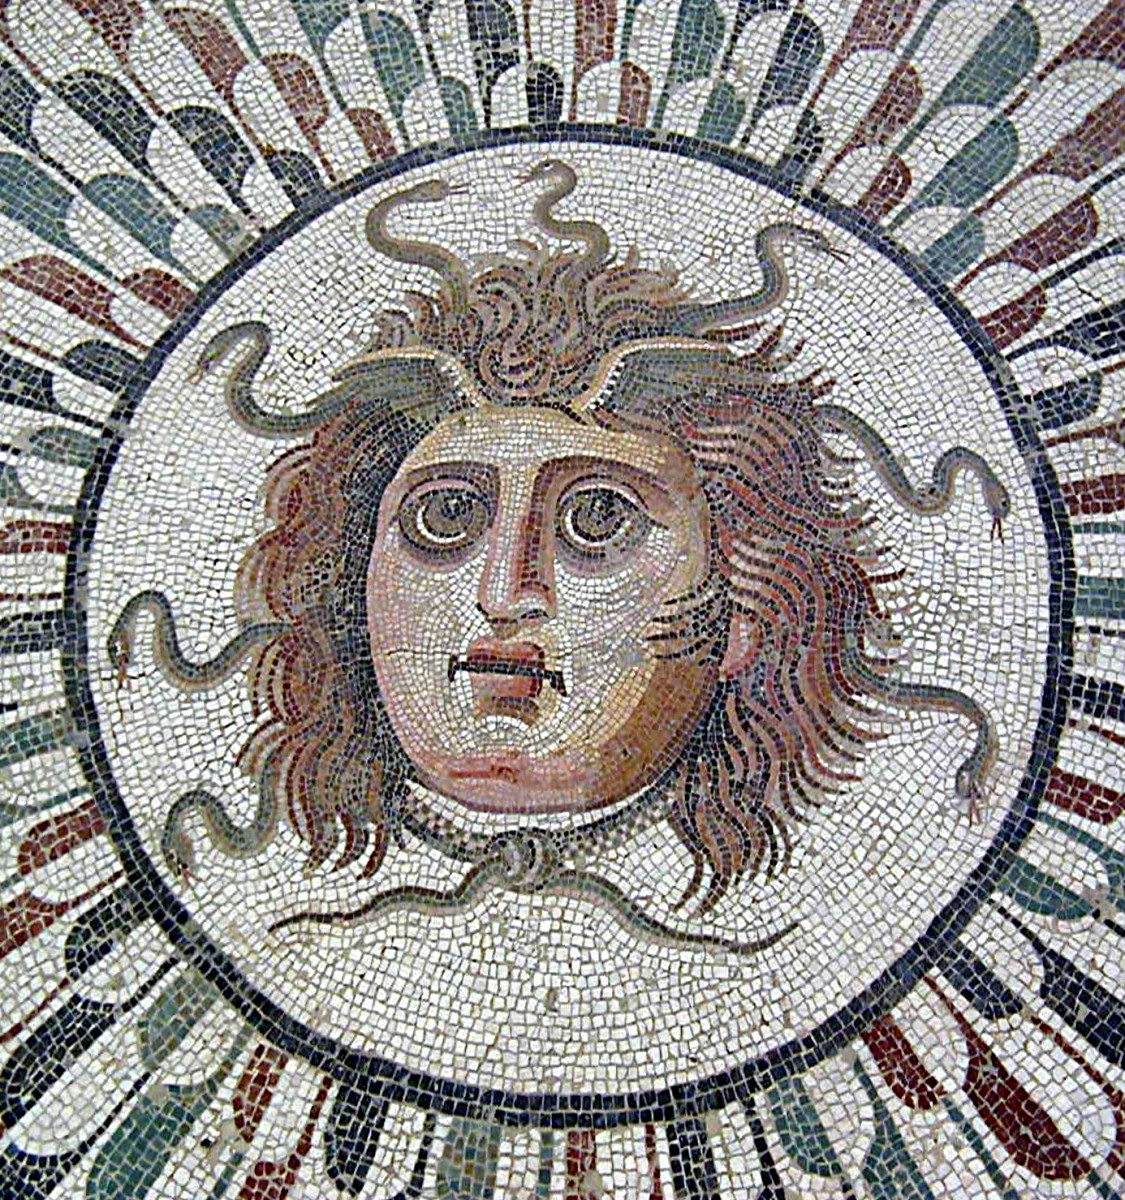 Roman Mosaic depicting Medusa, from Tunisia.